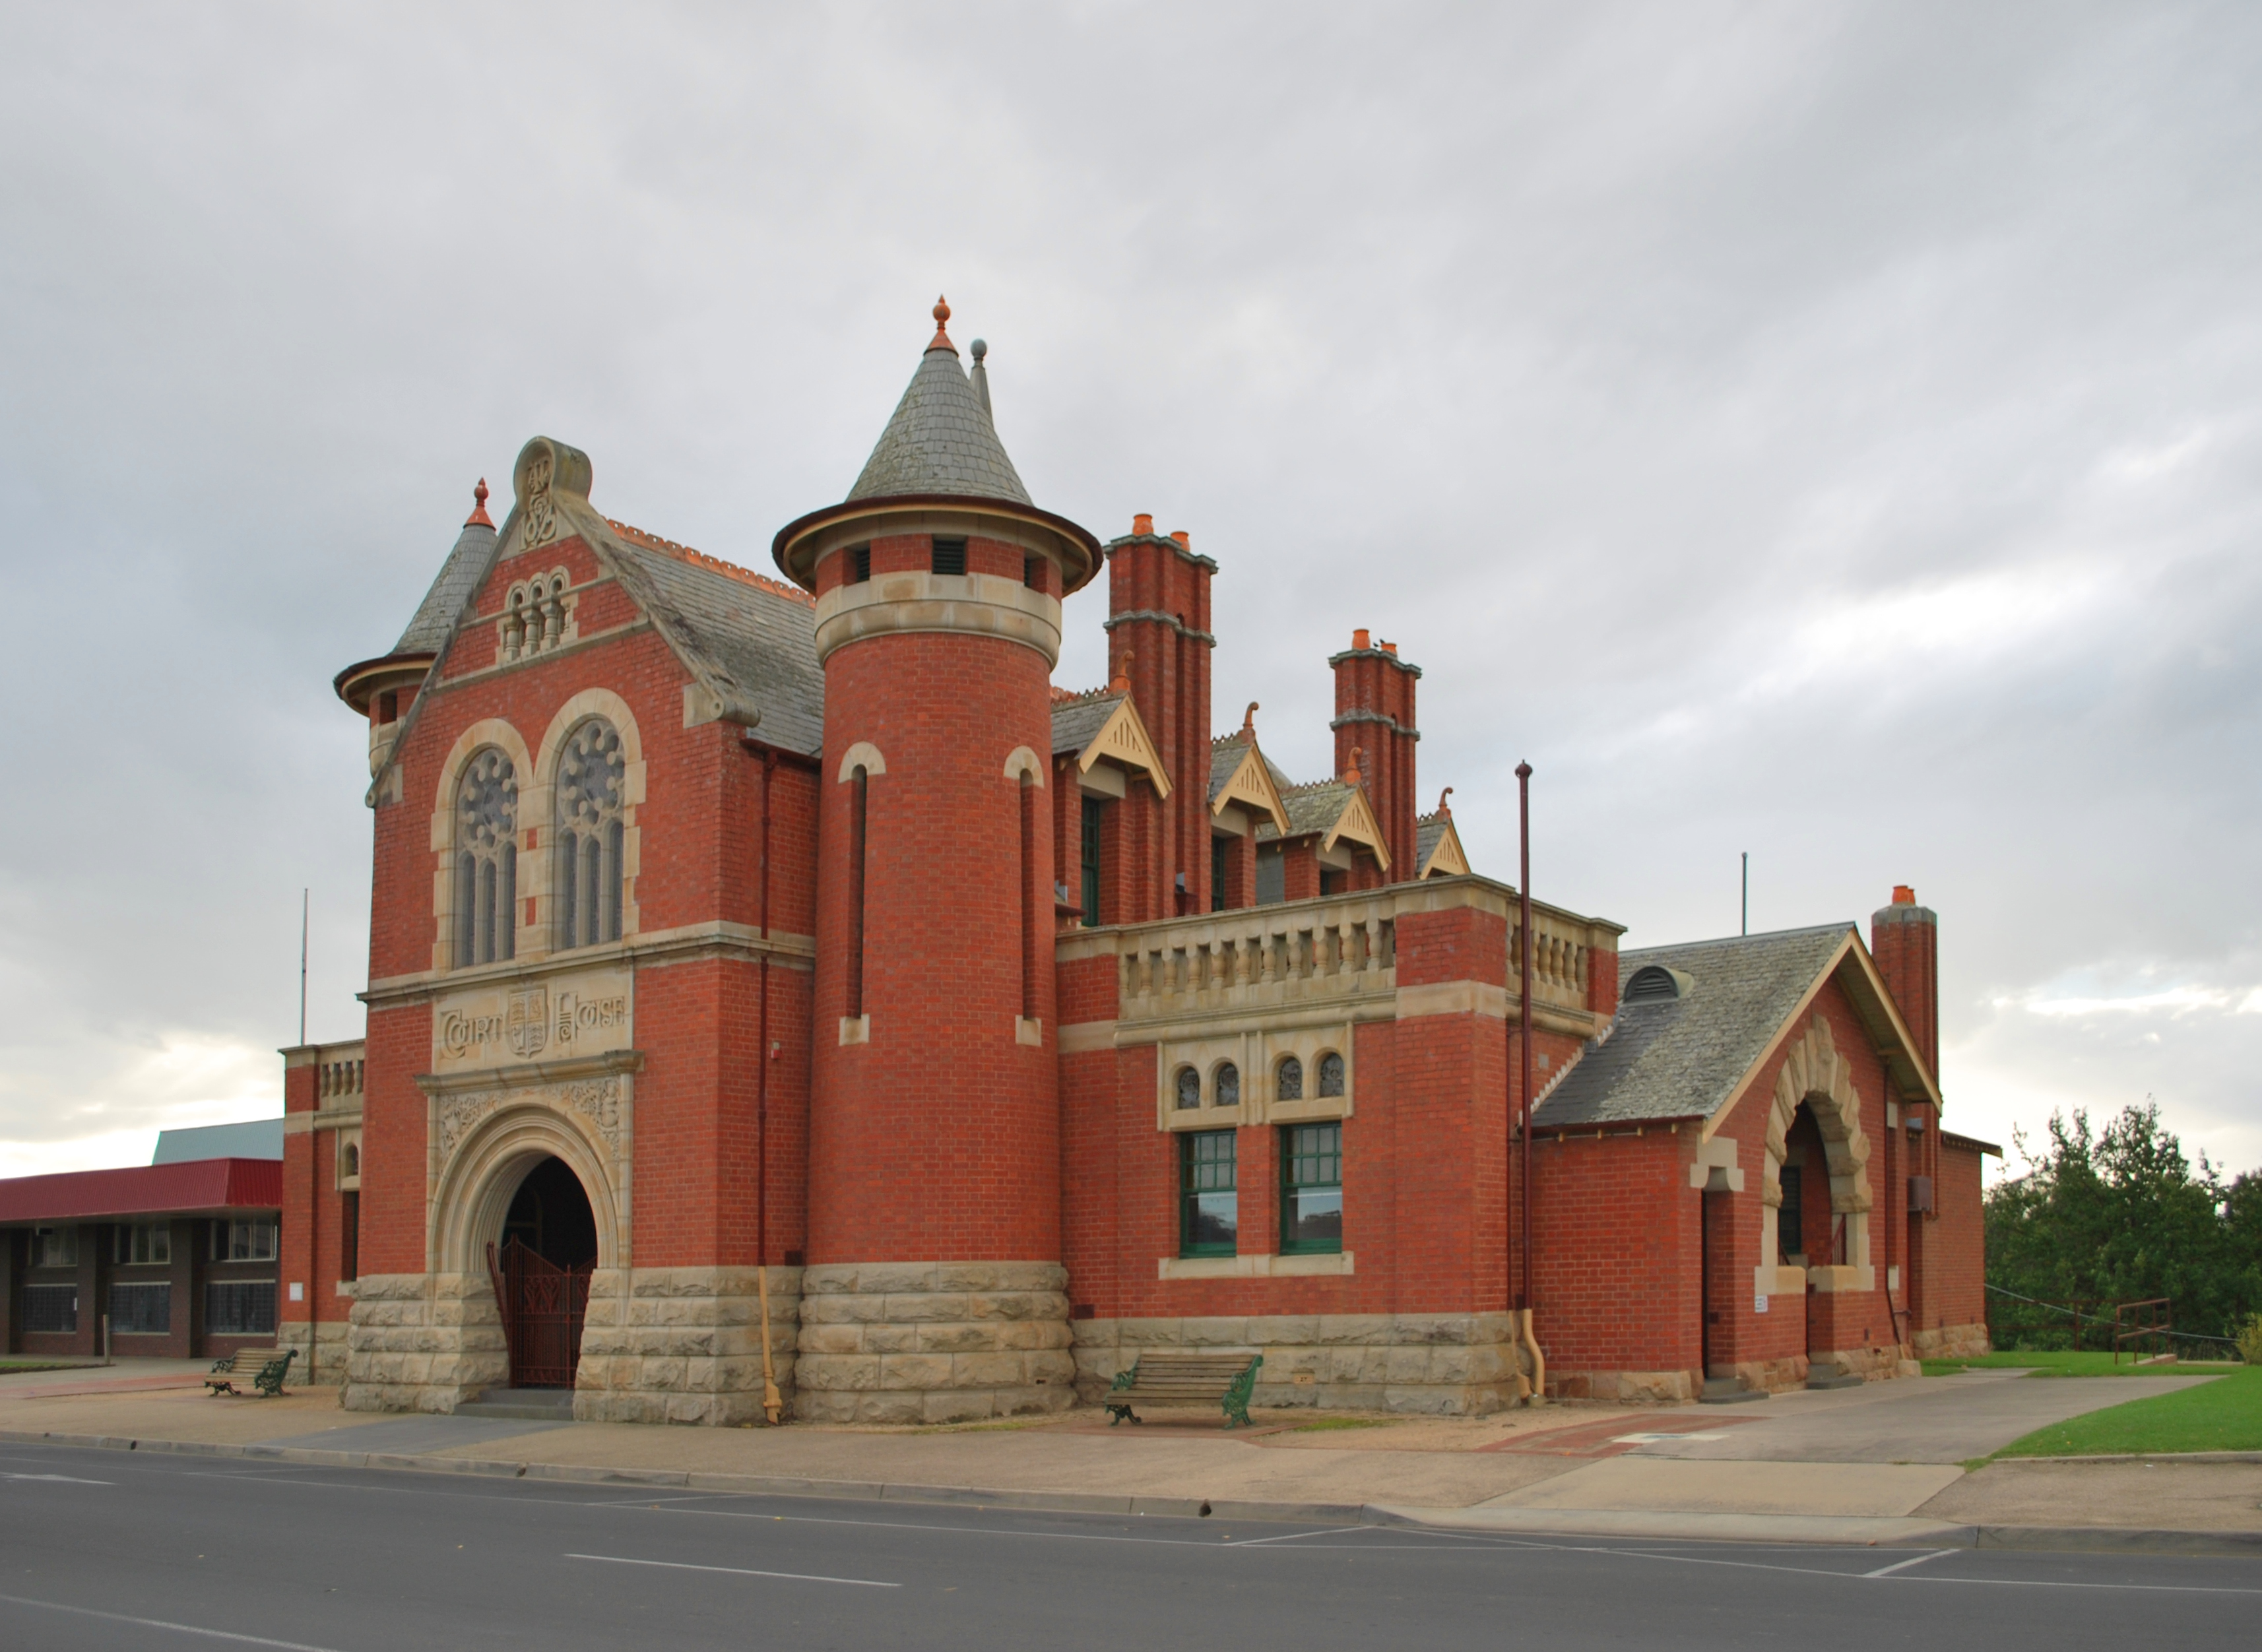 amelia court house online dating Browse the most recent amelia court house, virginia obituaries and condolences celebrate and remember the lives we have lost in amelia court house, virginia.